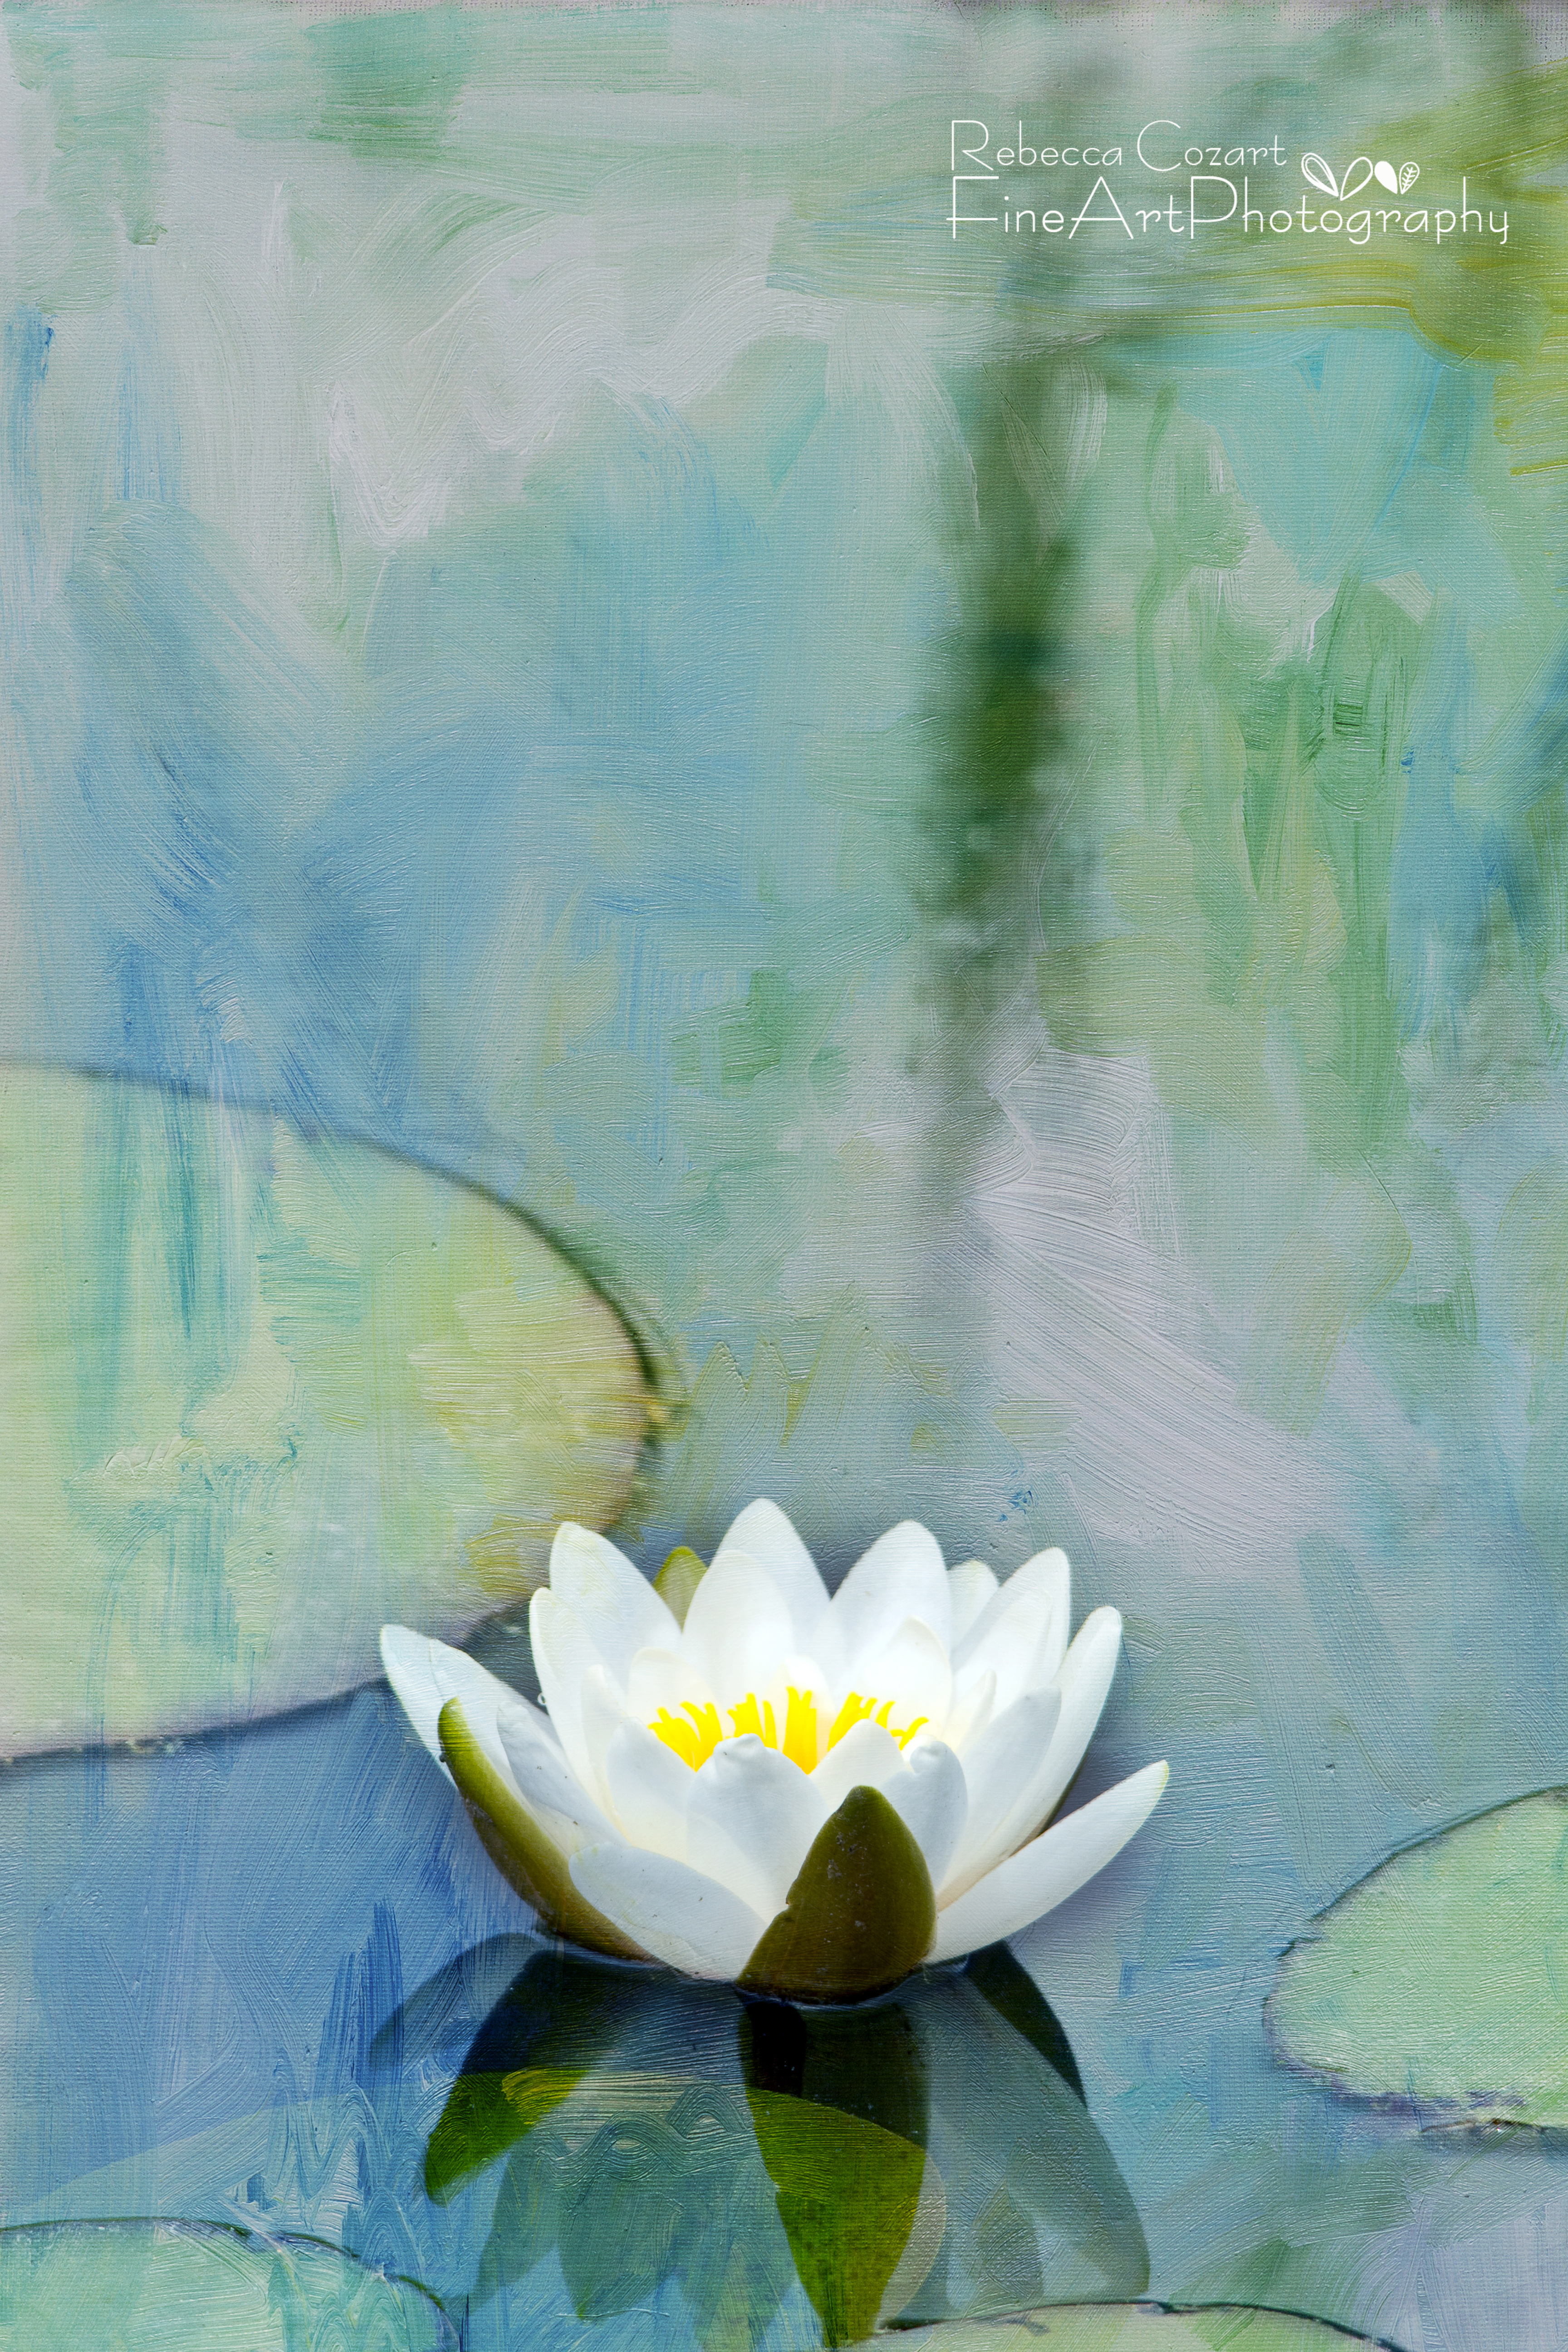 Water Lily - White Lily Pad 1 w texture - Eclectic Images